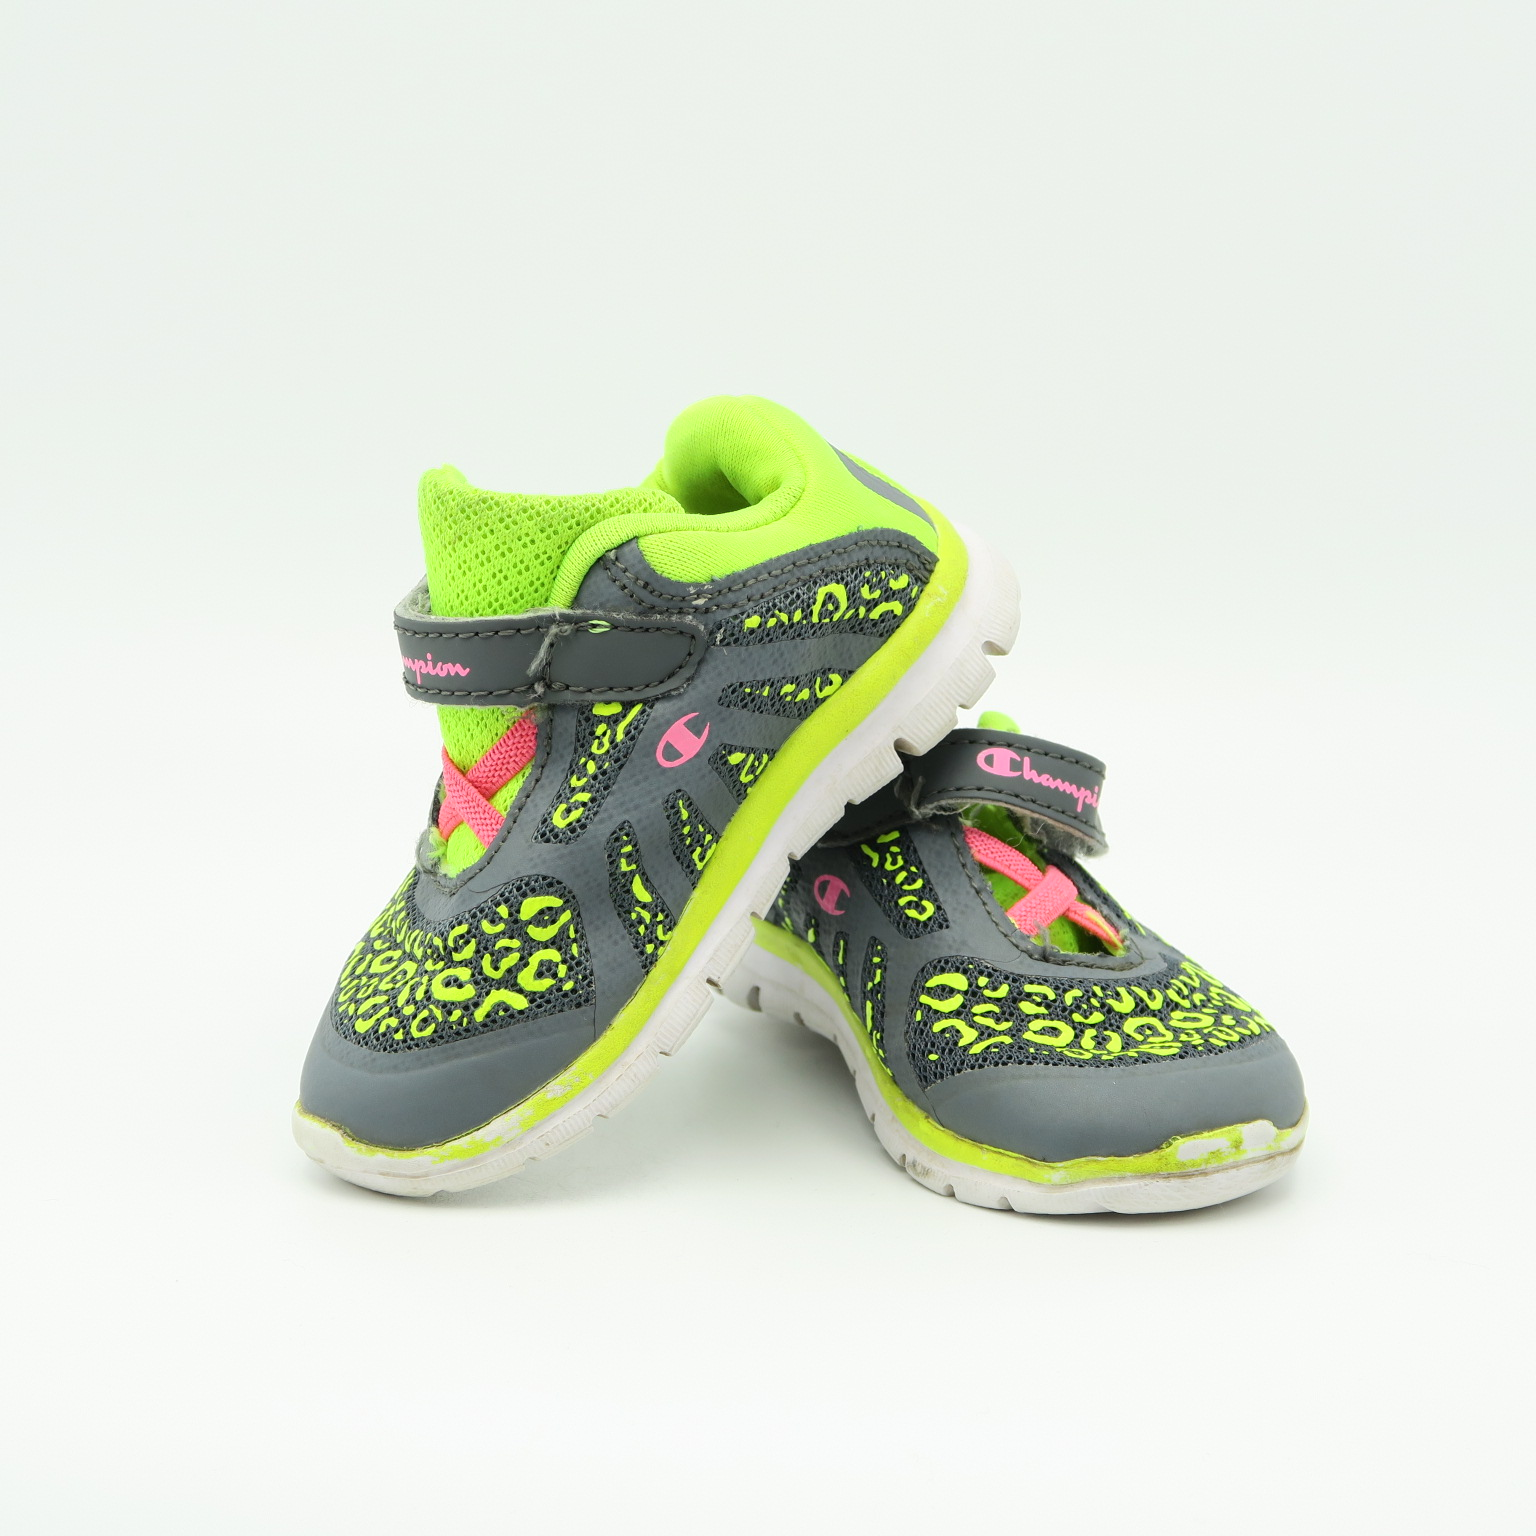 0dd547a7b2d Sneakers size  4W Infant - The Swoondle Society